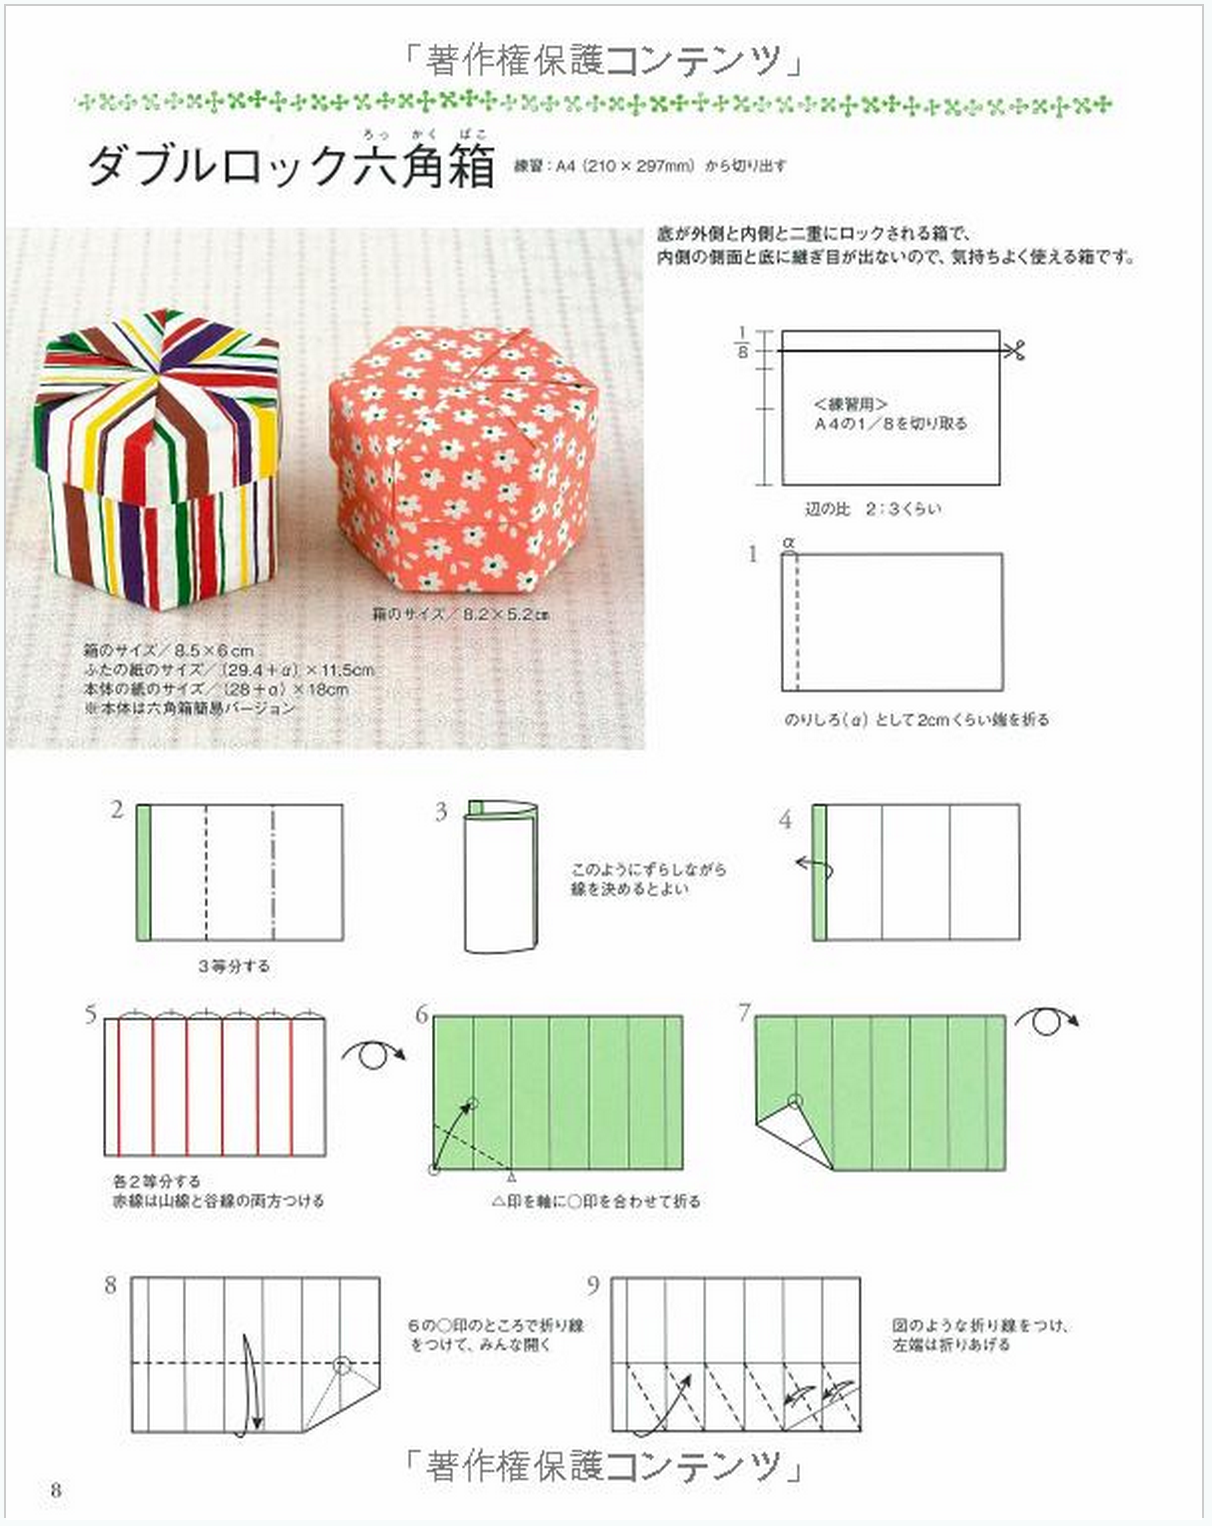 Beautiful Origami Boxes 3 Fuse Tomoko Lj Box3 S Books Papers For Free Ebooks